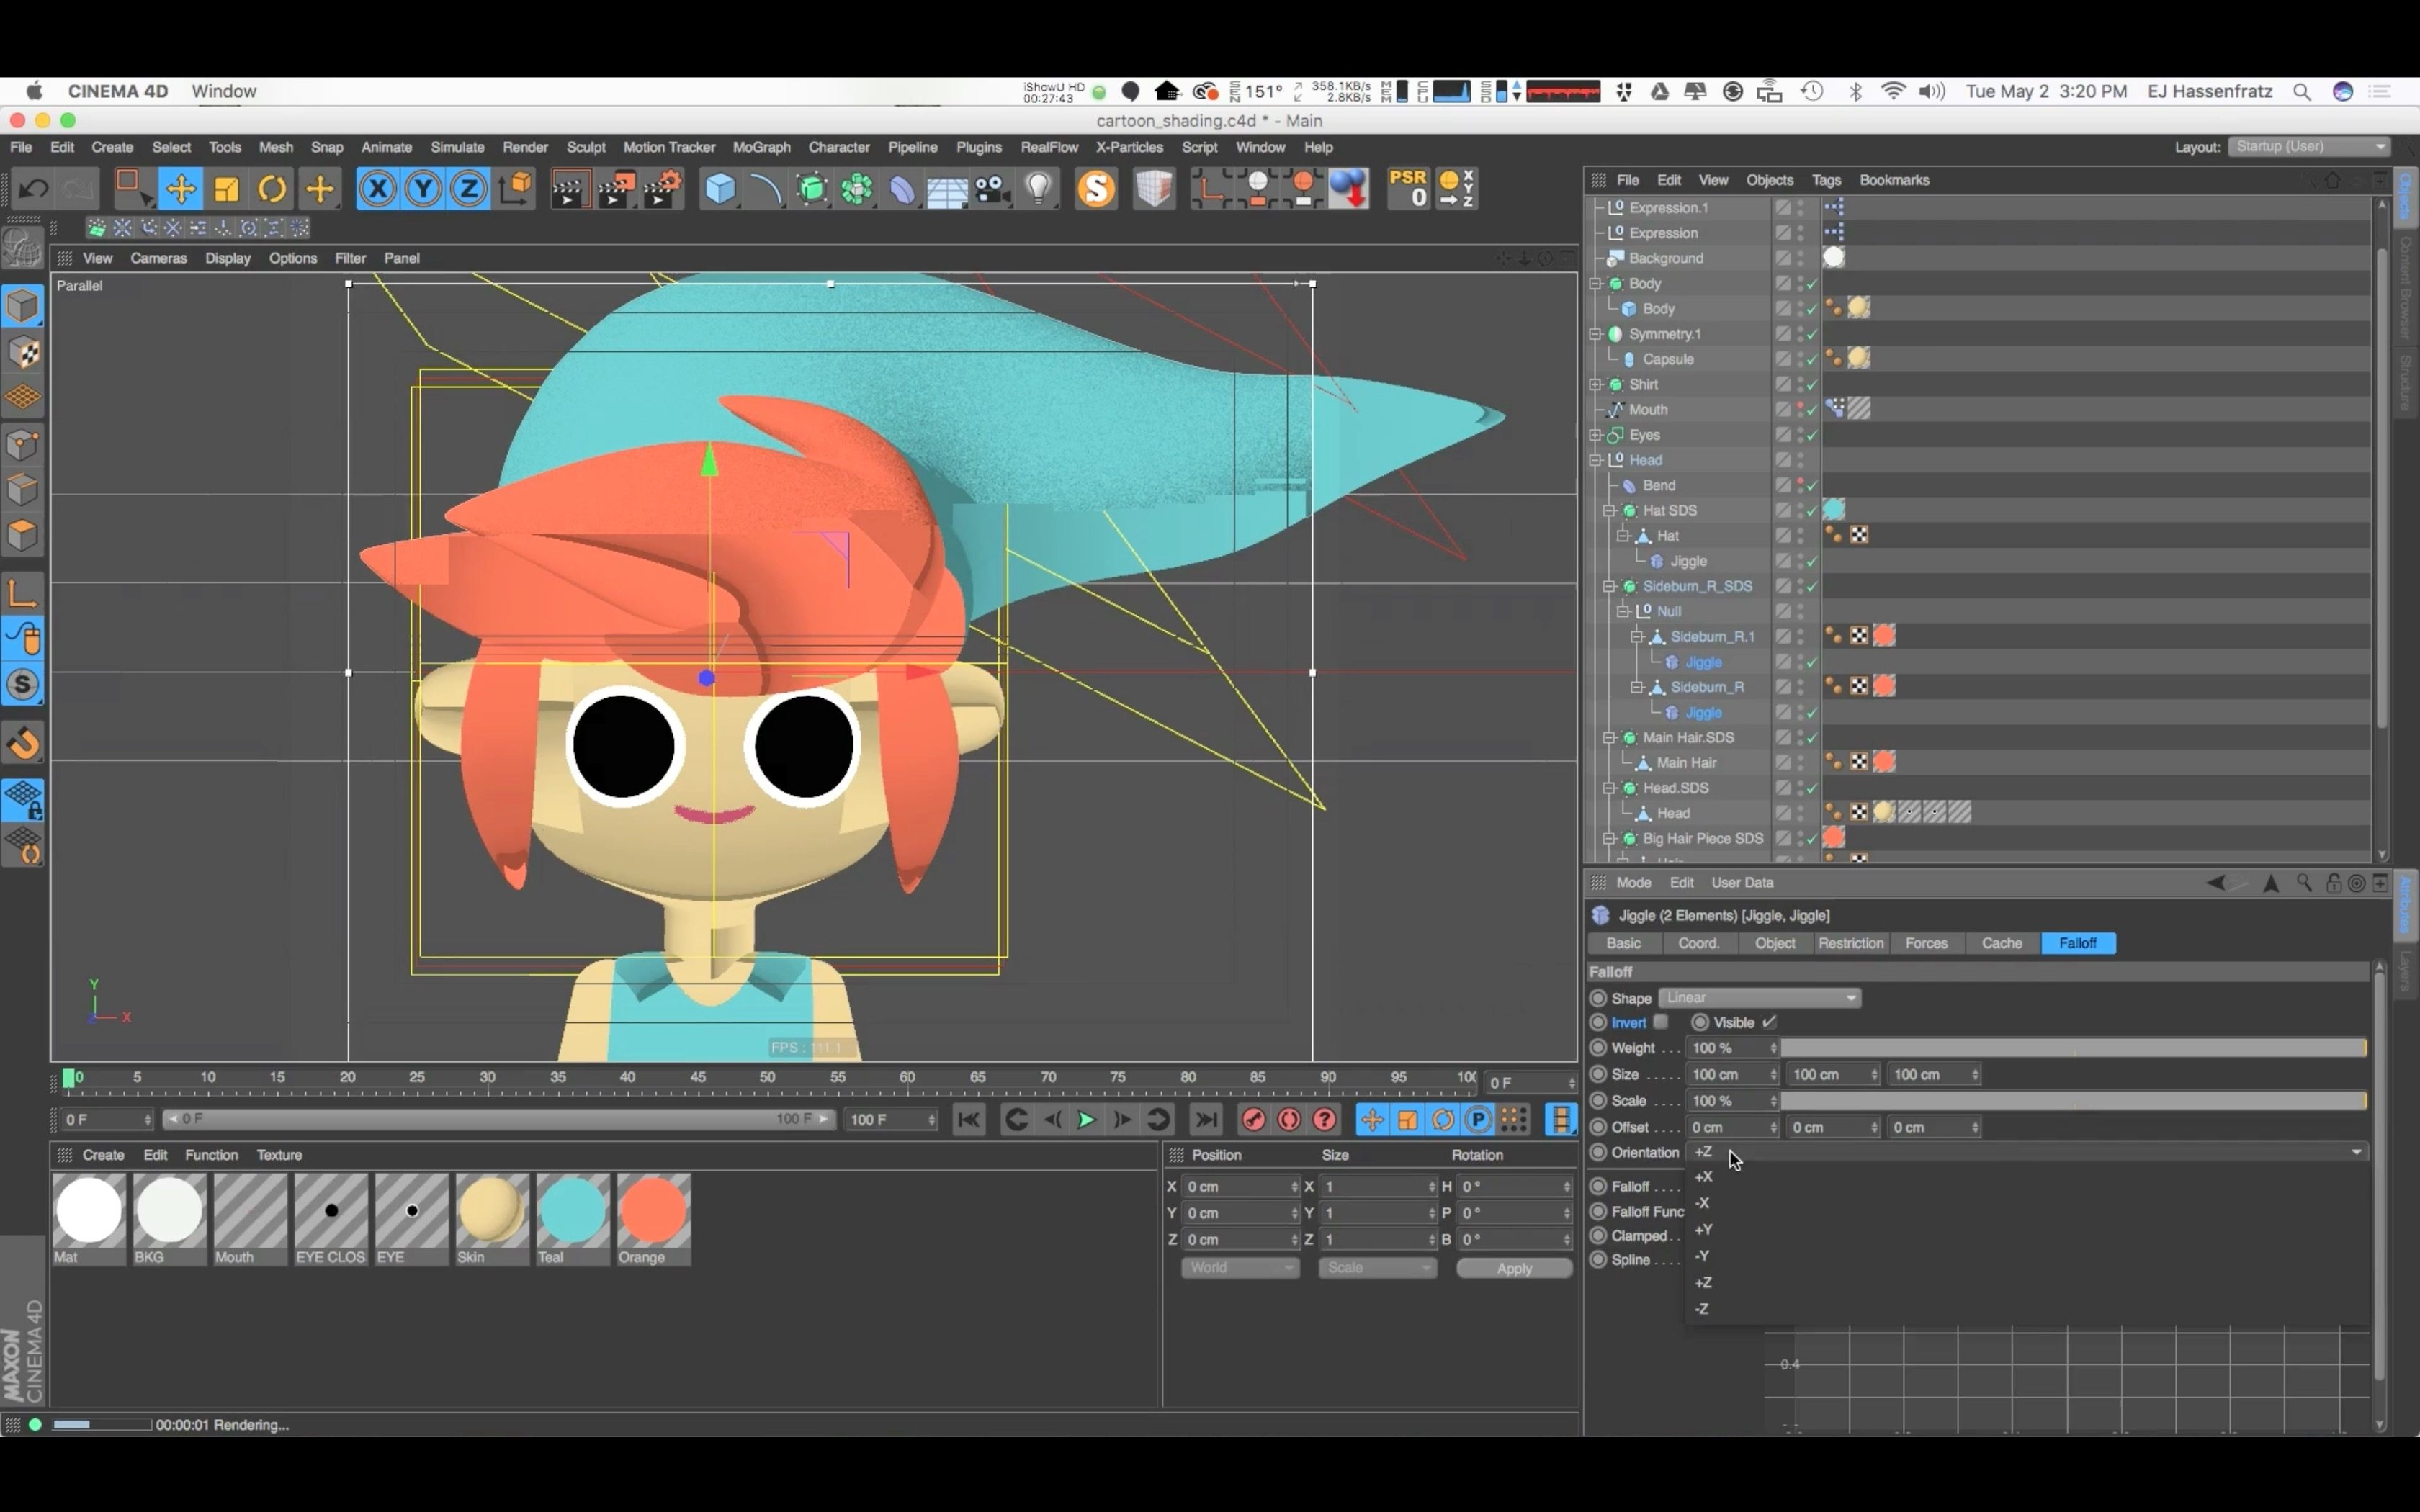 Tutorial: Creating a Cartoon Render Using the Cel Shader in Cinema 4D